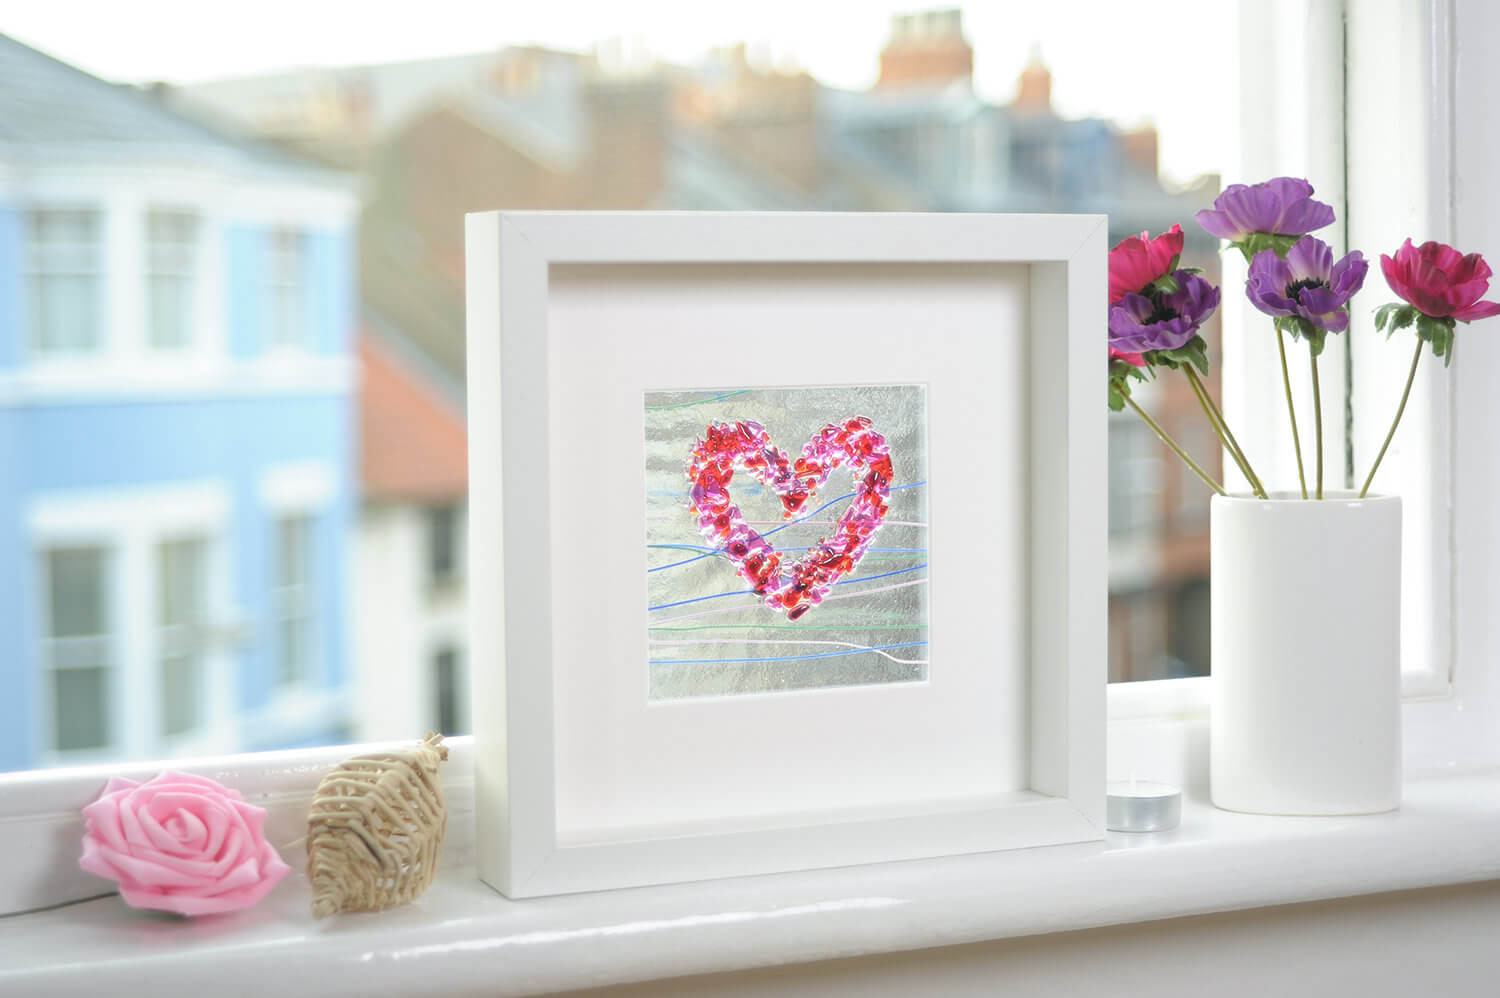 Framed glass art photographed on the window sill with period buildings in the background out of focus